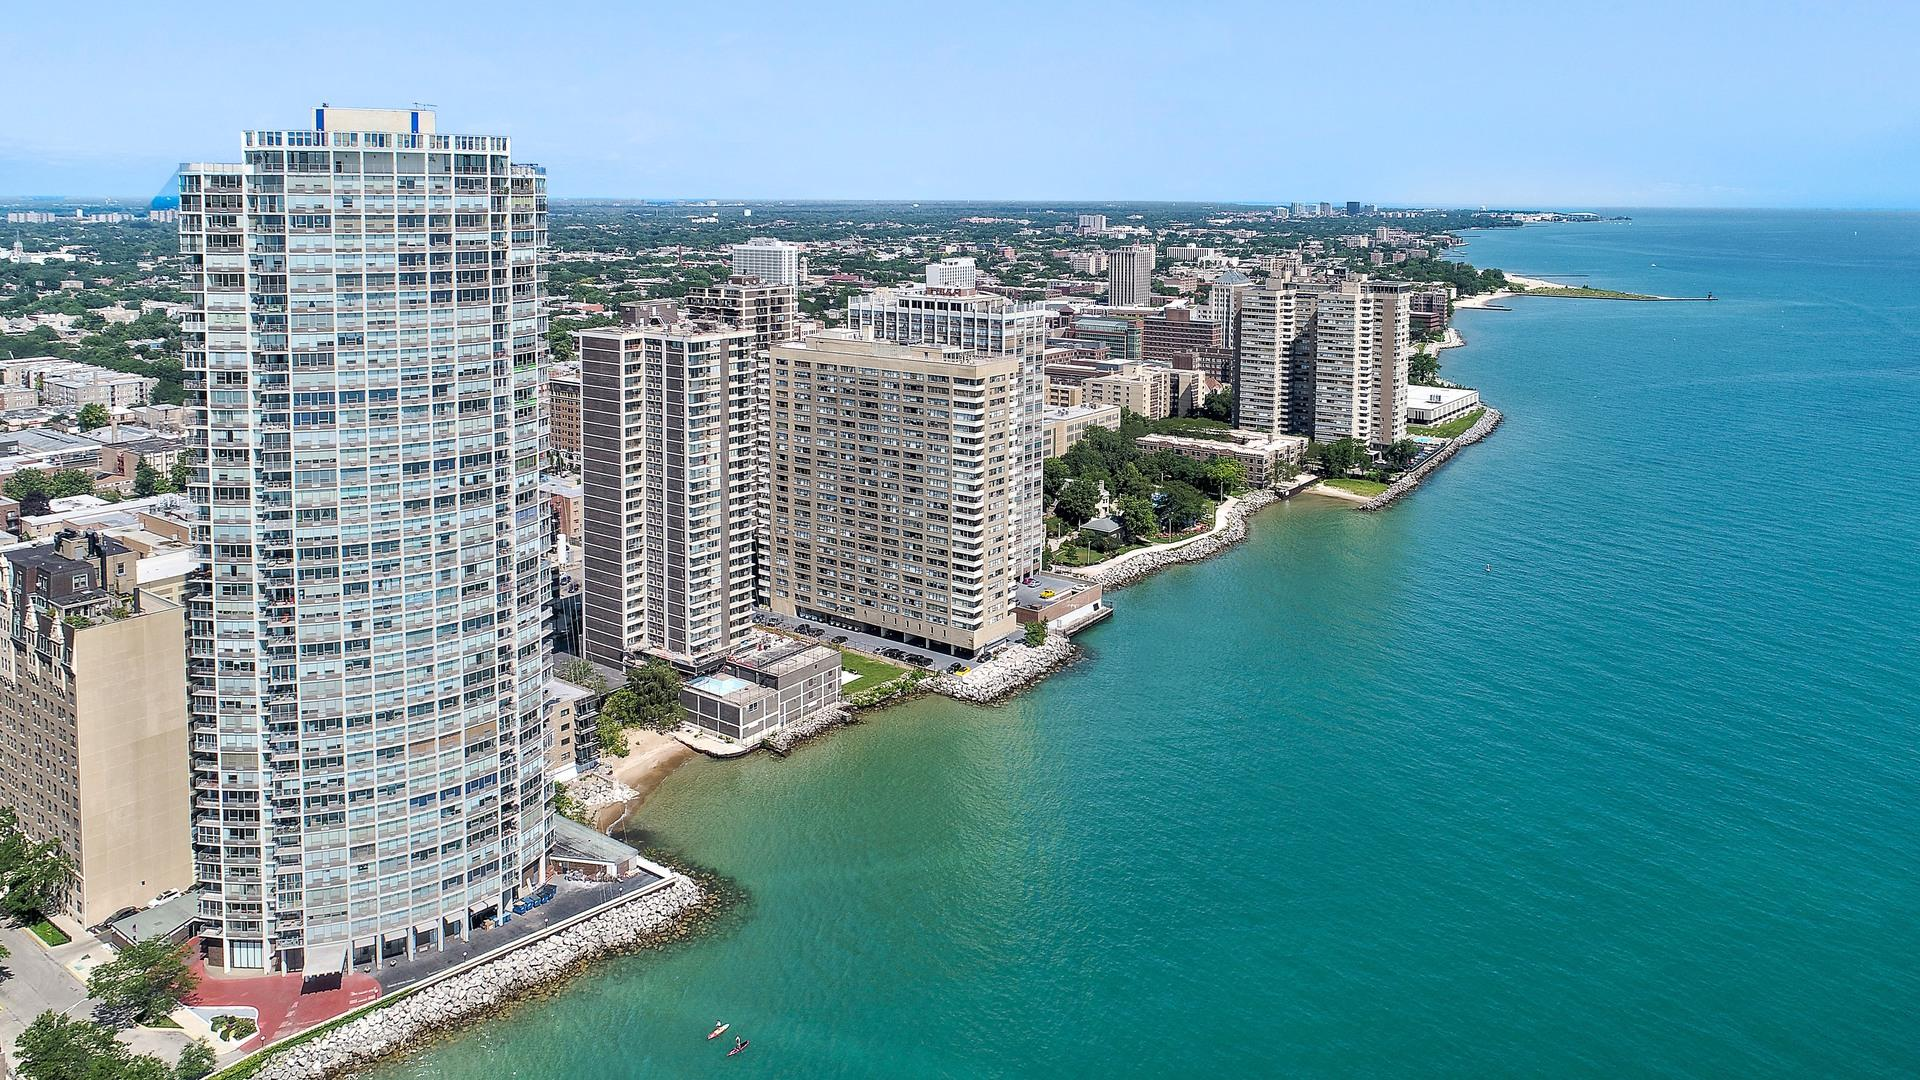 6101 N Sheridan Road #21A, Chicago, IL 60660 - #: 10934612